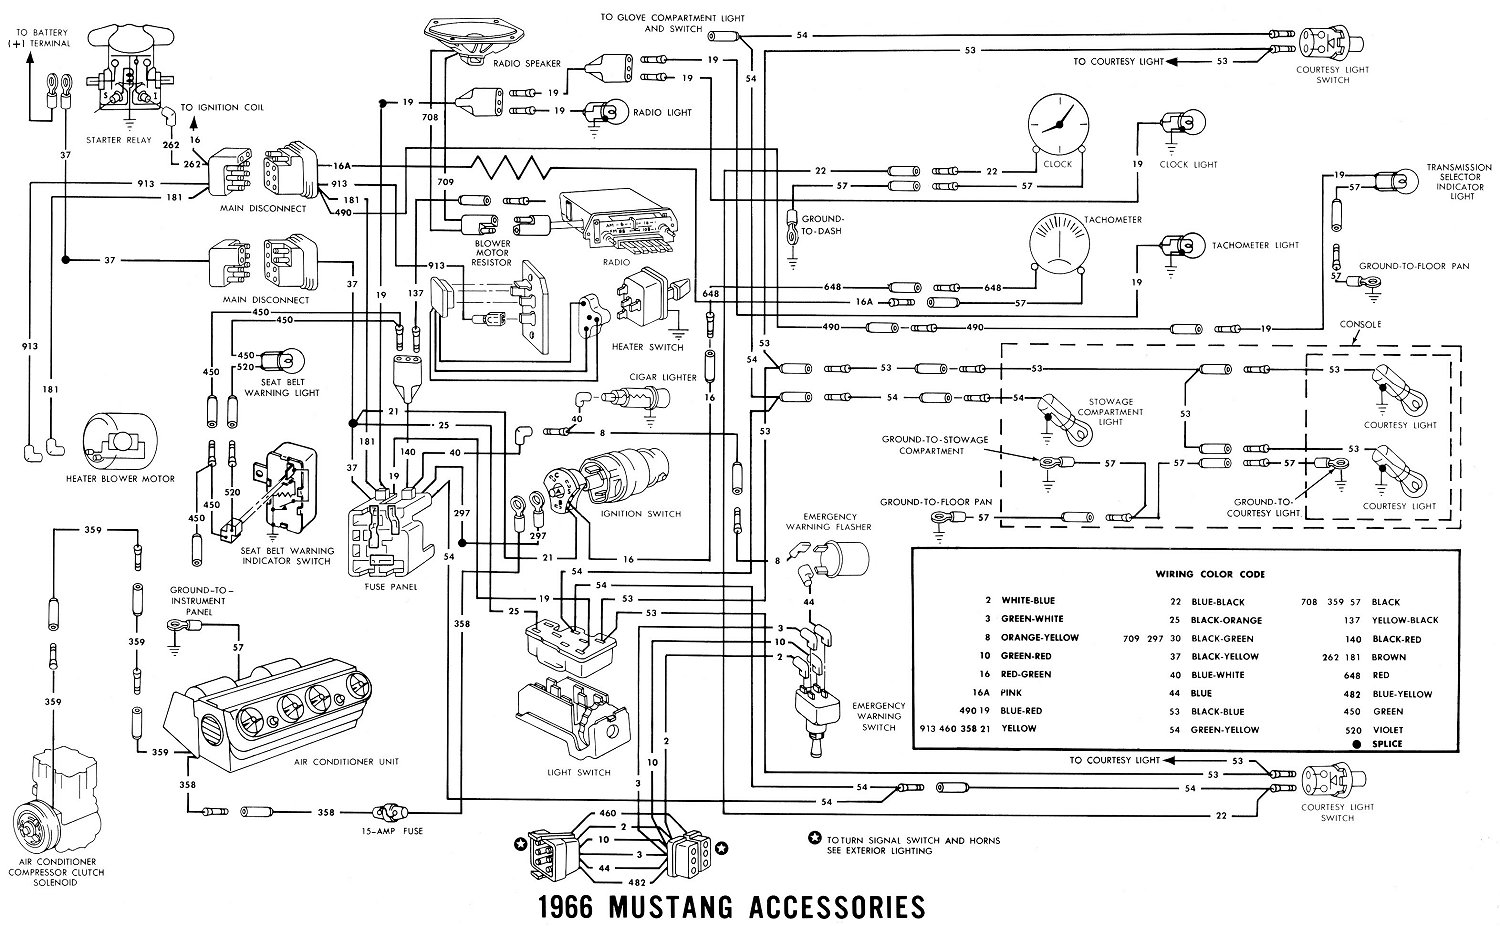 2014 Mustang Wiring Schematics - wiring diagram solid-venus -  solid-venus.hoteloctavia.it | 2014 Mustang Wiring Diagram |  | hoteloctavia.it